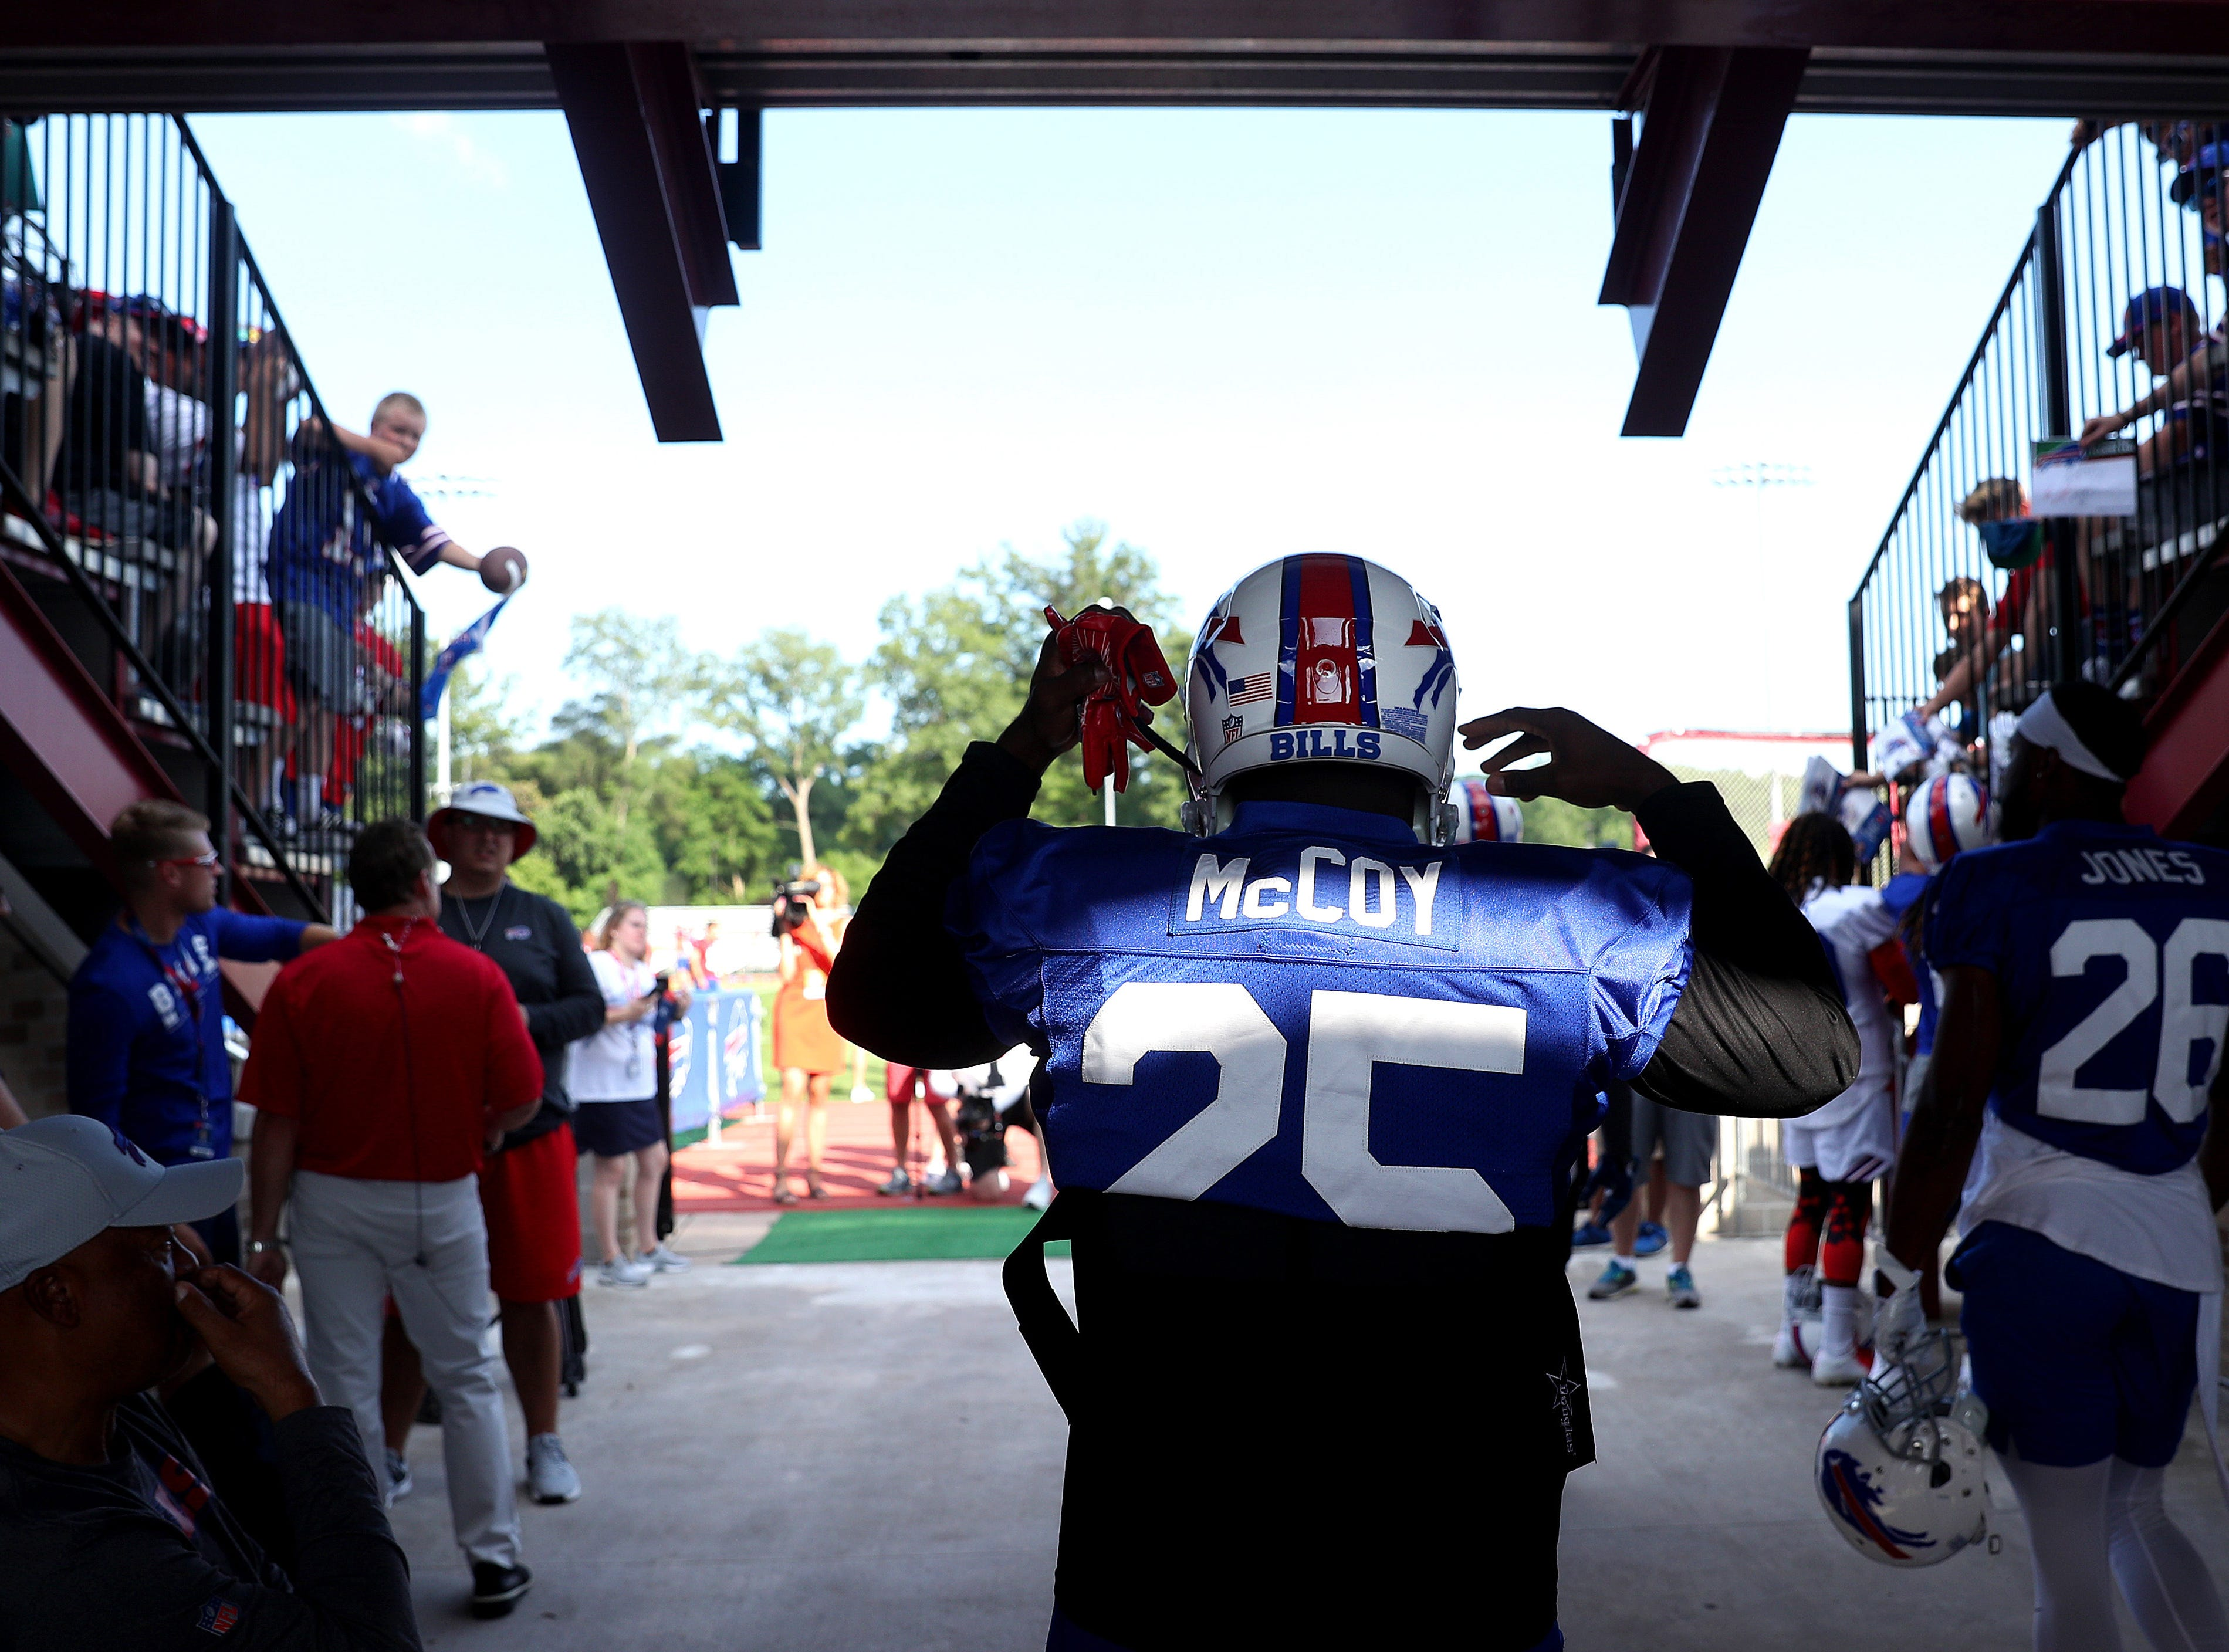 Bills running back LeSean McCoy heads out onto the practice field to cheers from fans on the opening night of training camp at St. John Fisher College.  The star running back is coming in with some off-the-field baggage about a break-in and assault at one of his homes.  I knew he would be the story and I really wanted to make a poignant  photo of him.  When I saw the sliver of light shining through the bleachers as he entered the stadium, I waited until it illuminated his name and fired.